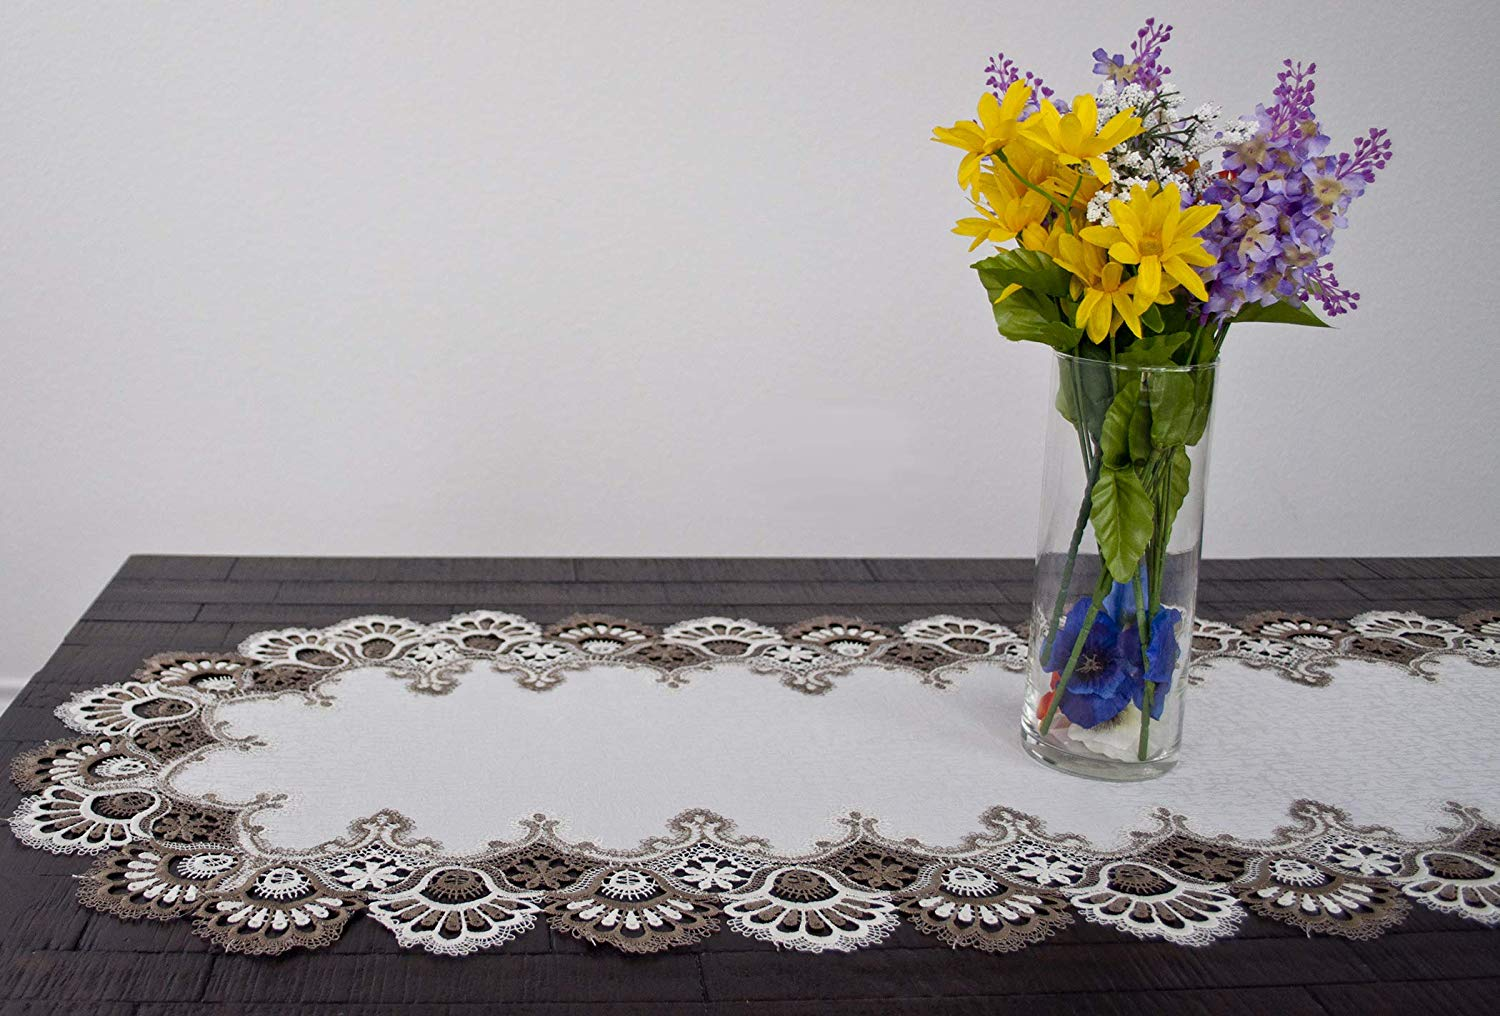 cocoa lace table runner – 16 x 43